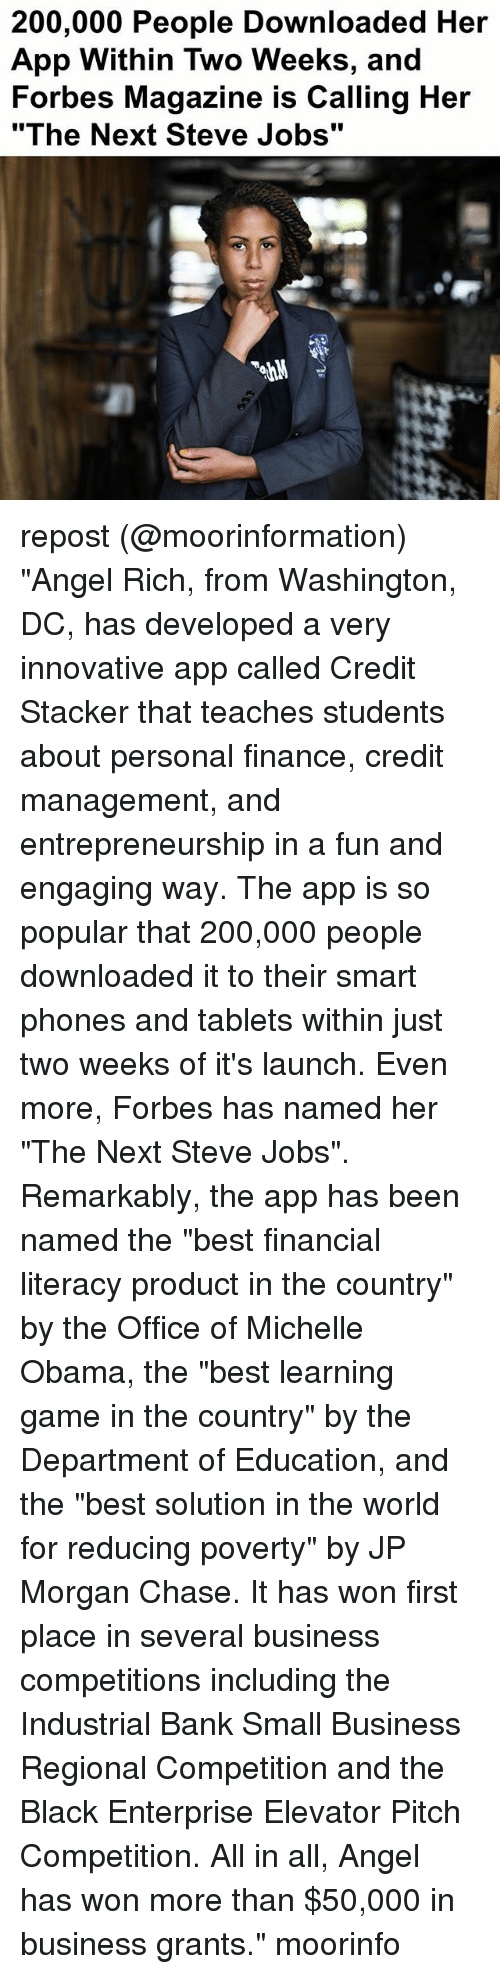 "Chasee: 200,000 People Downloaded Her  App Within Two Weeks, and  Forbes Magazine is Calling Her  ""The Next Steve Jobs"" repost (@moorinformation) ""Angel Rich, from Washington, DC, has developed a very innovative app called Credit Stacker that teaches students about personal finance, credit management, and entrepreneurship in a fun and engaging way. The app is so popular that 200,000 people downloaded it to their smart phones and tablets within just two weeks of it's launch. Even more, Forbes has named her ""The Next Steve Jobs"". Remarkably, the app has been named the ""best financial literacy product in the country"" by the Office of Michelle Obama, the ""best learning game in the country"" by the Department of Education, and the ""best solution in the world for reducing poverty"" by JP Morgan Chase. It has won first place in several business competitions including the Industrial Bank Small Business Regional Competition and the Black Enterprise Elevator Pitch Competition. All in all, Angel has won more than $50,000 in business grants."" moorinfo"